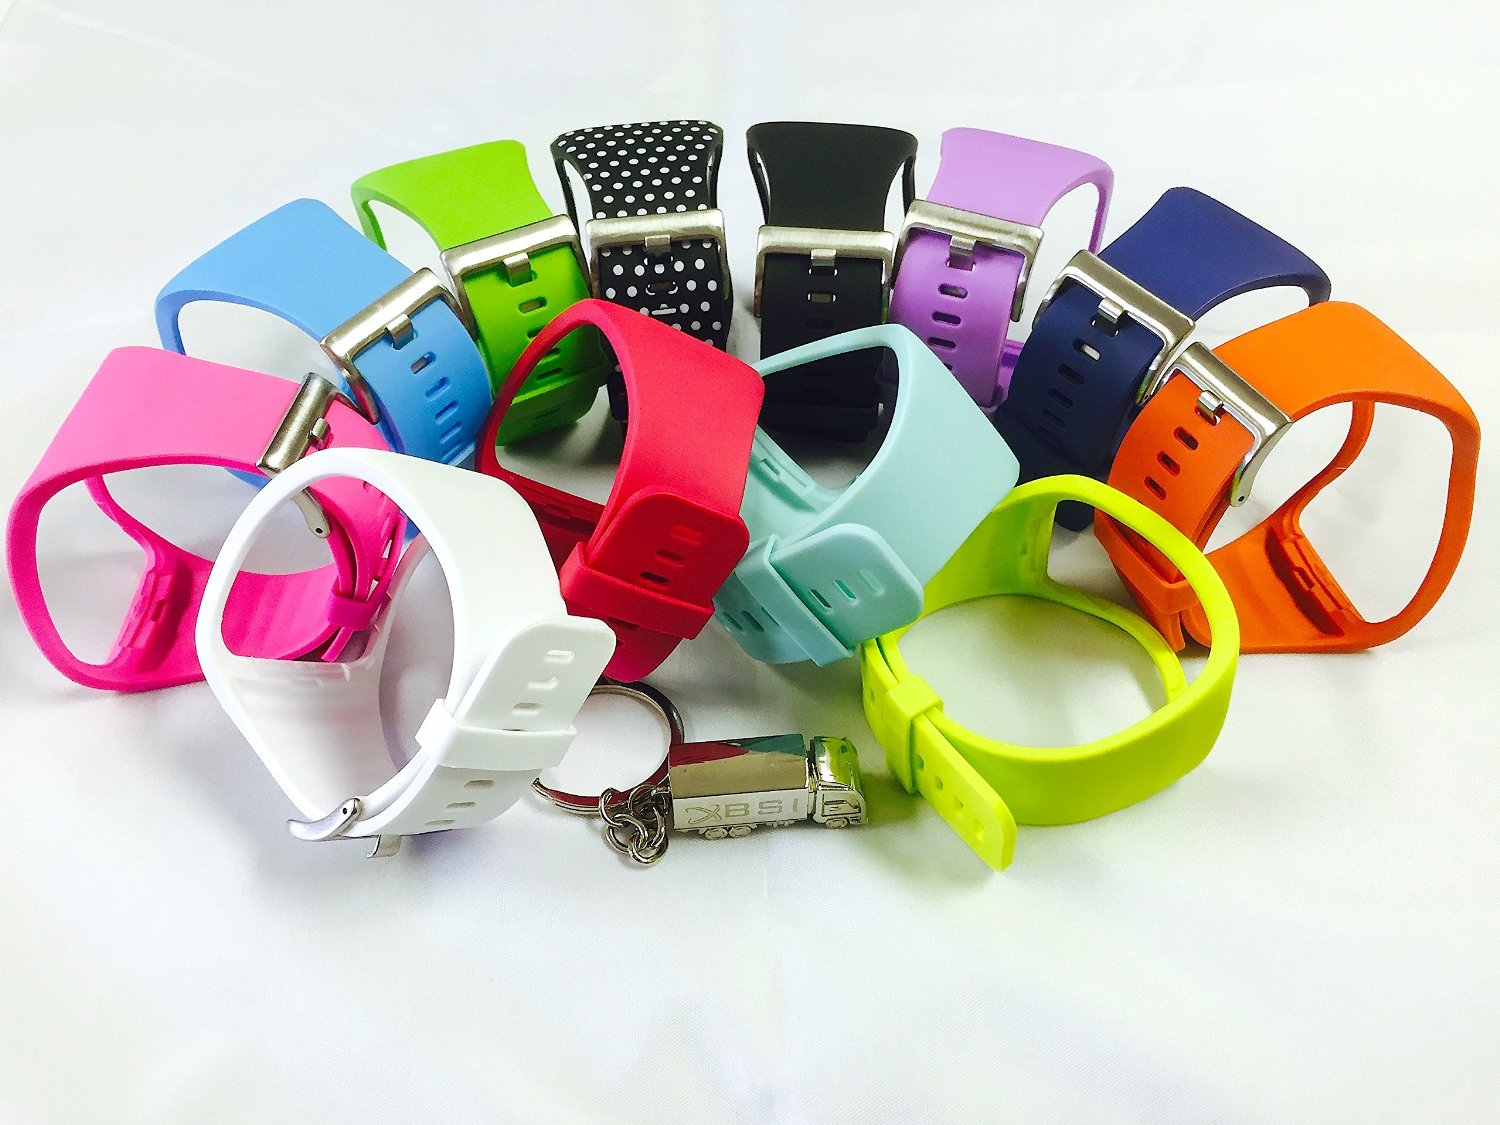 BSI Replacement Bands for Samsung Gear S Smart Watch, Set of 12 (White, Teal, Tangerine, Rose, Purple/Violet, Pink, Navy Blue, Lime Green, Light Blue, Citrus Yellow, Black and Black with White Dots)